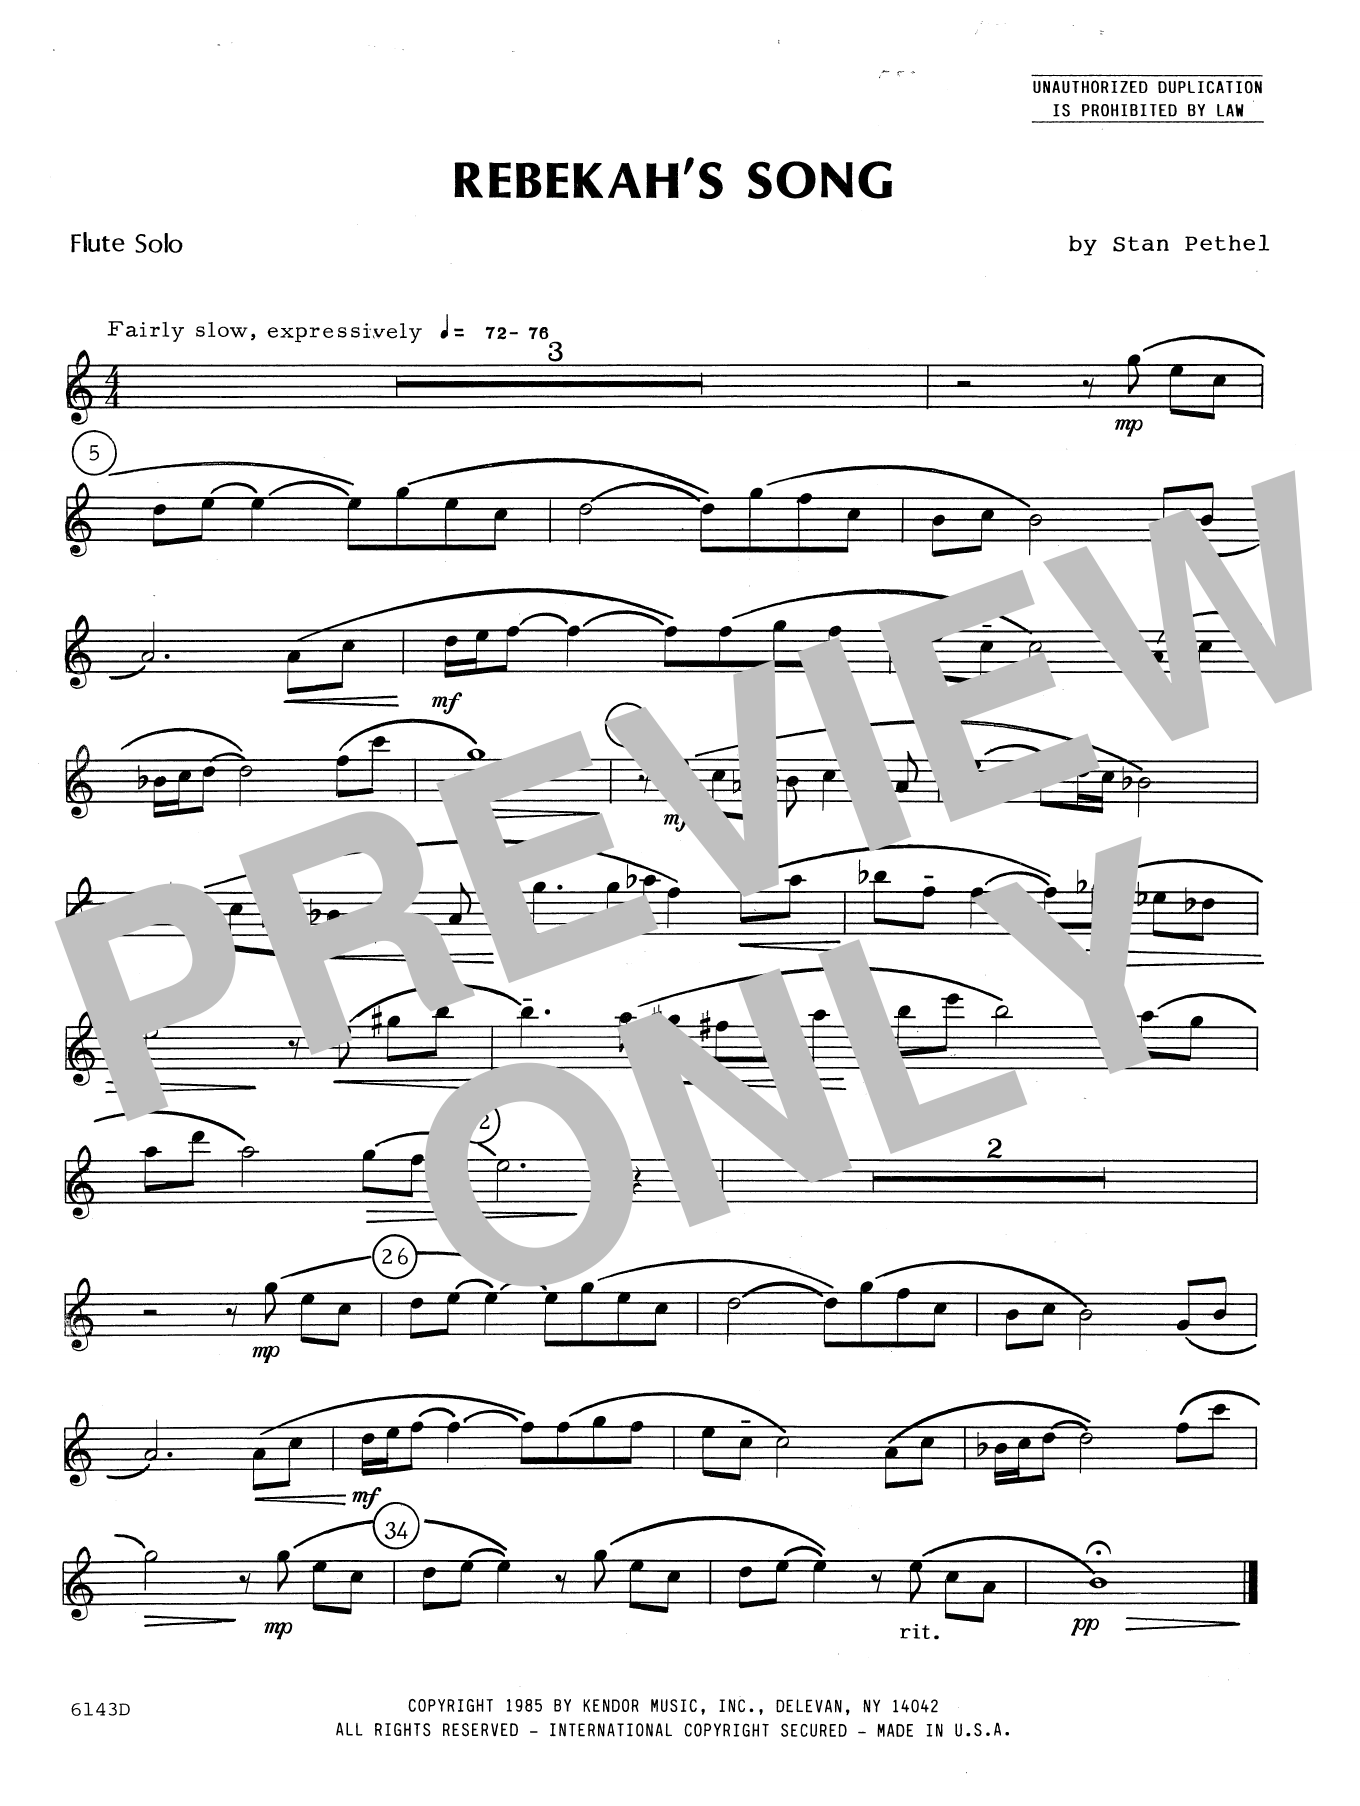 Rebekah's Song (complete set of parts) sheet music for flute and piano by Stan Pethel